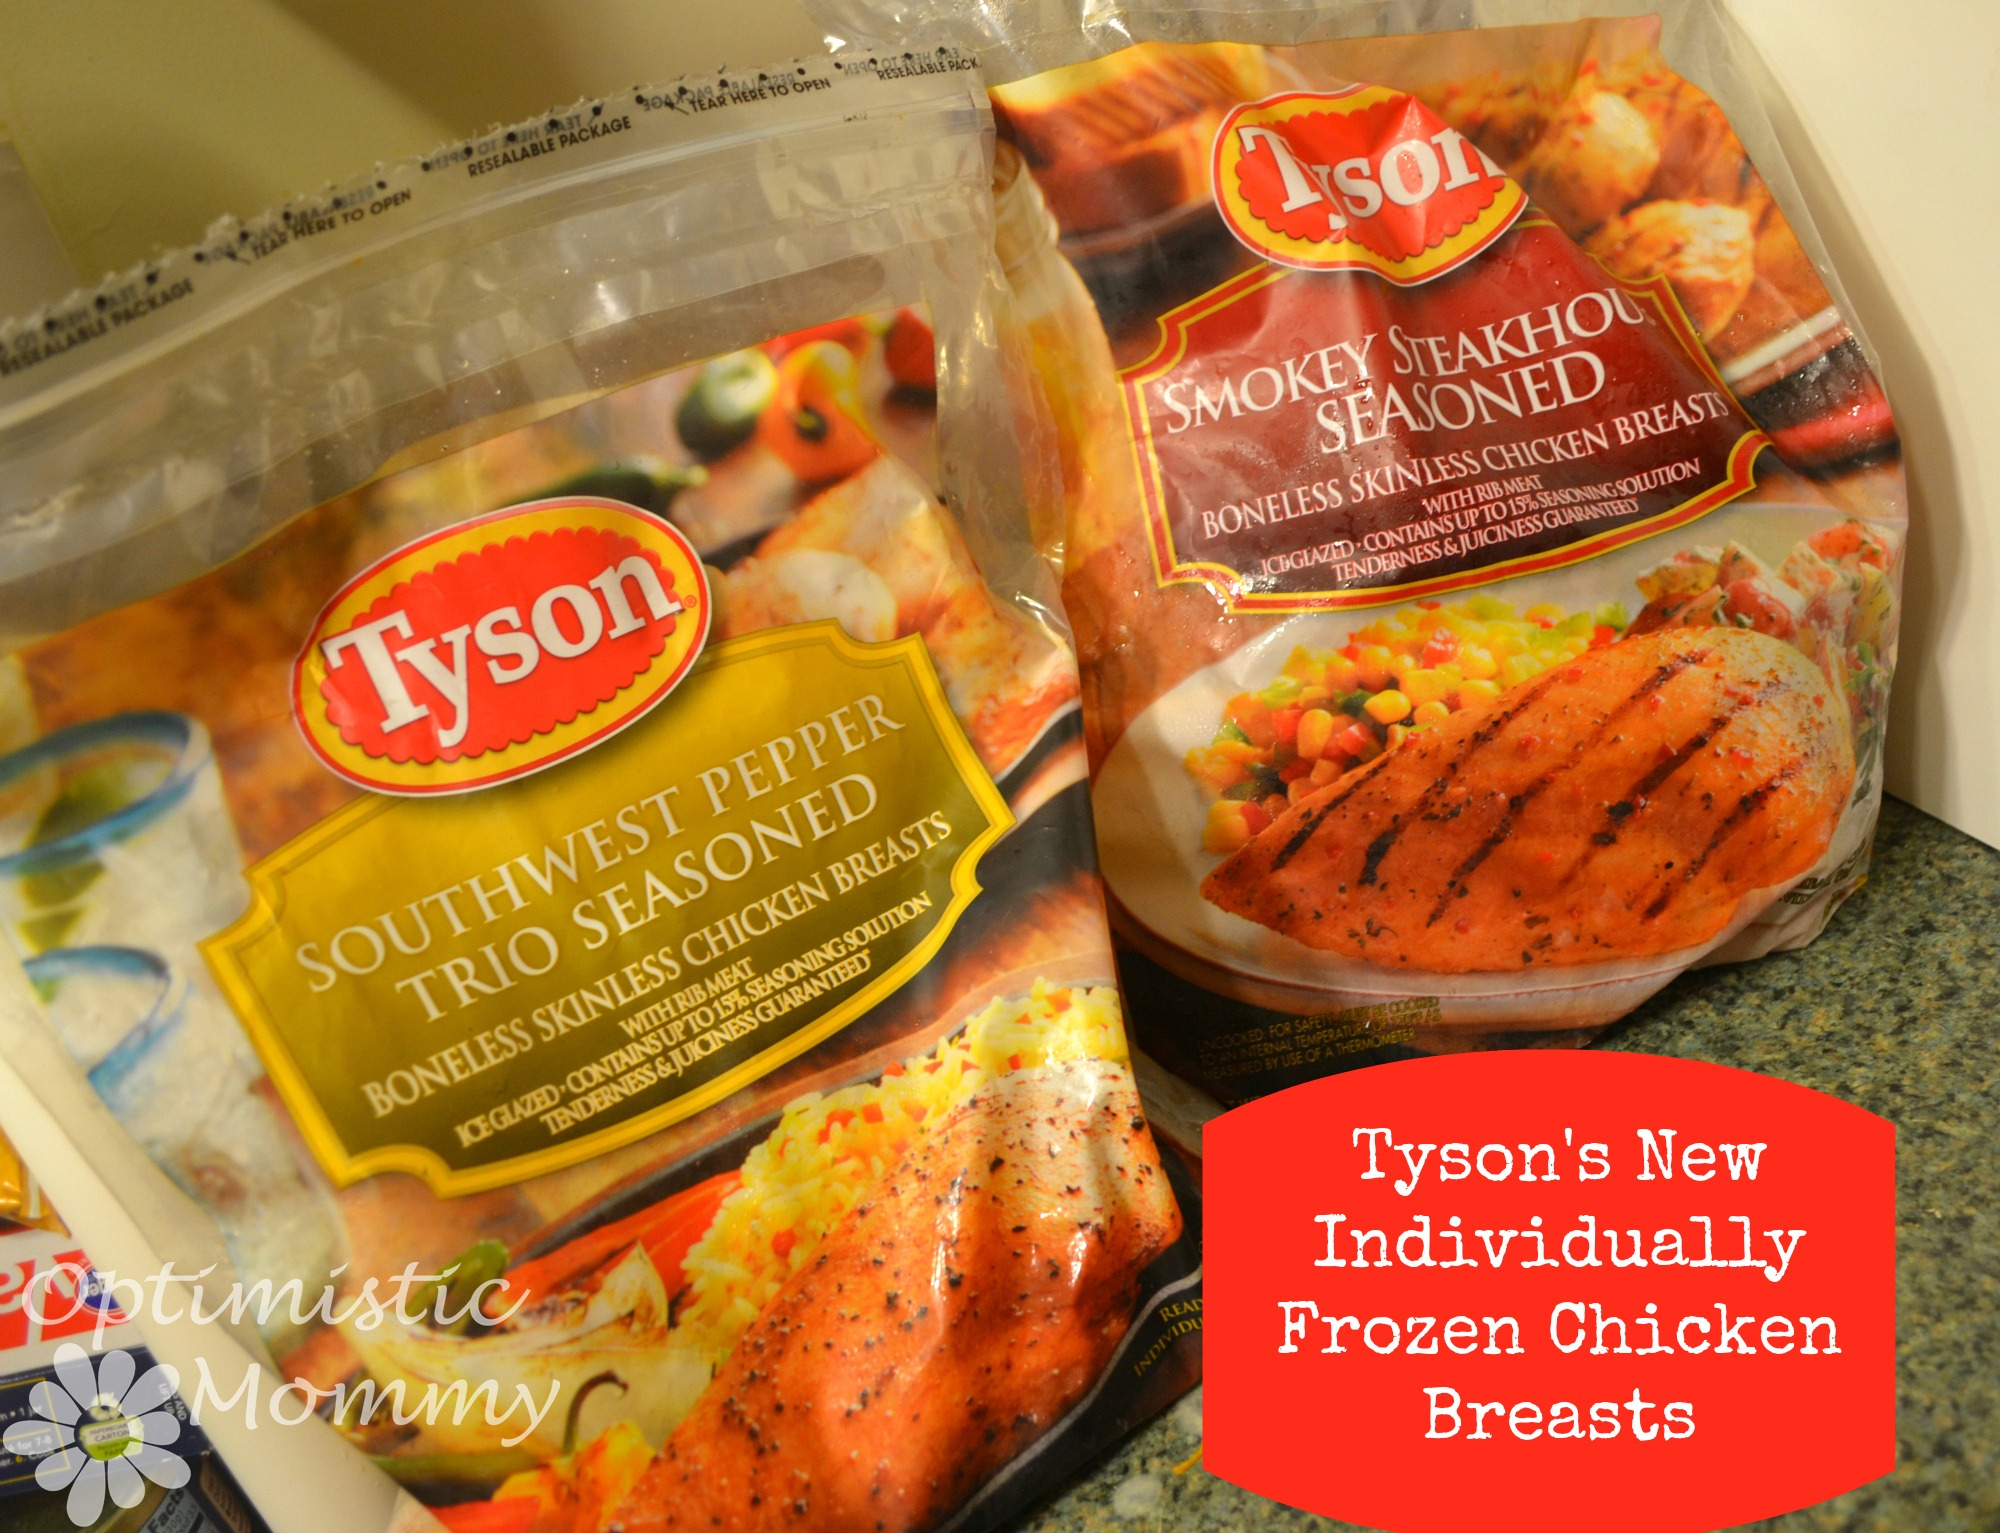 Tyson Individually Frozen Chicken in NEW Flavors - Smokey Steakhouse Seasoned & Southwest Pepper Trio Seasoned